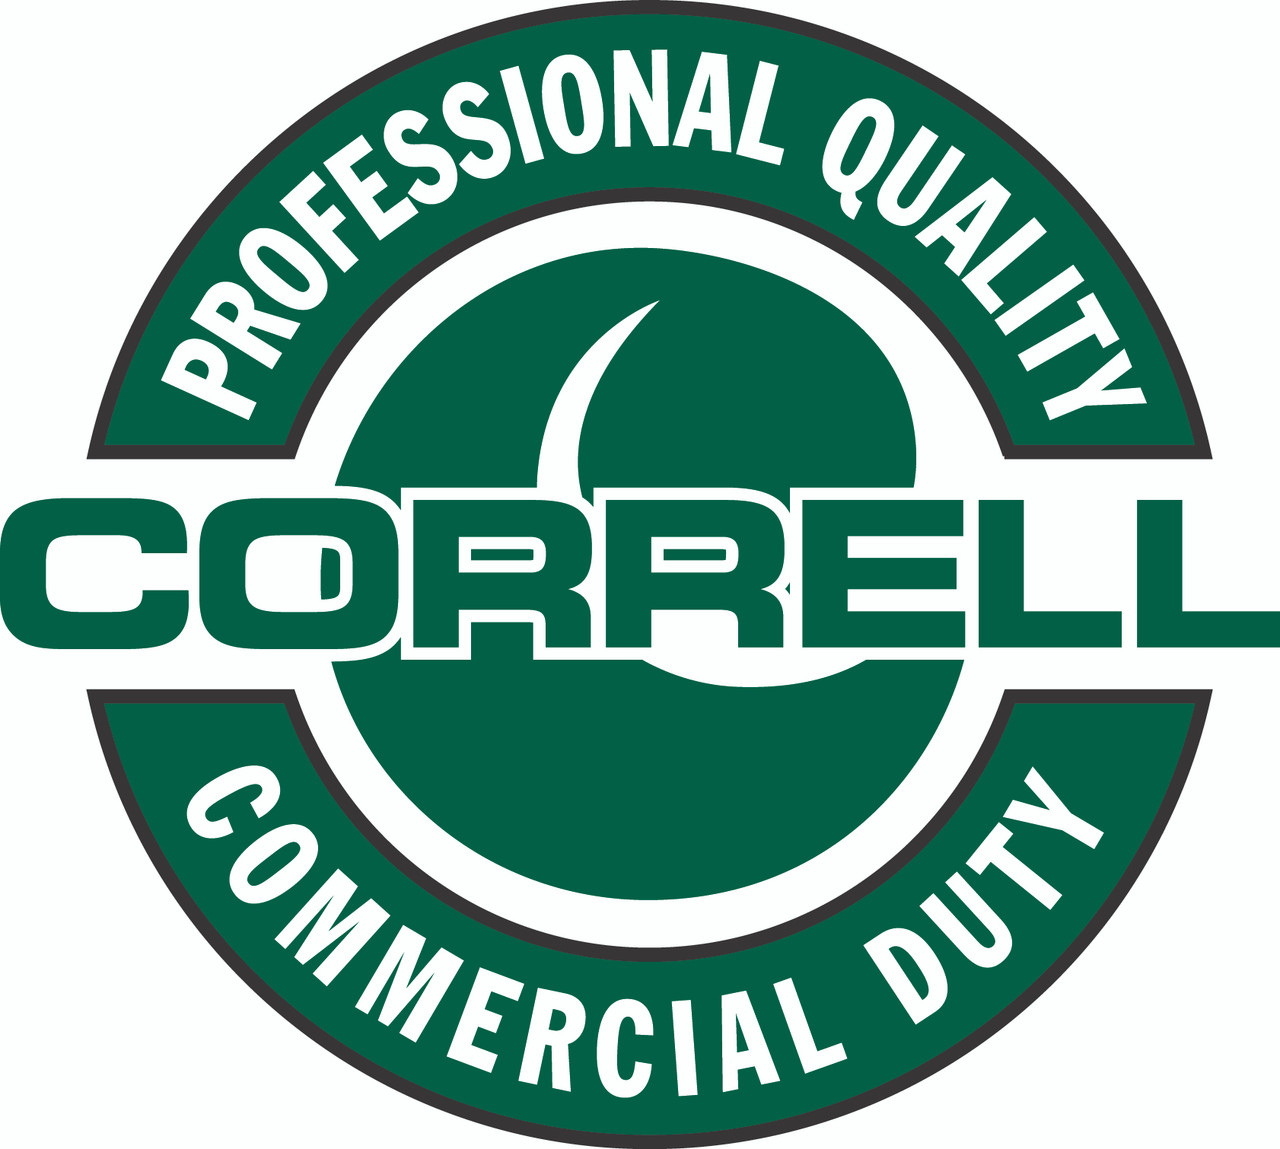 USA Made - Pro Quality Correll Products